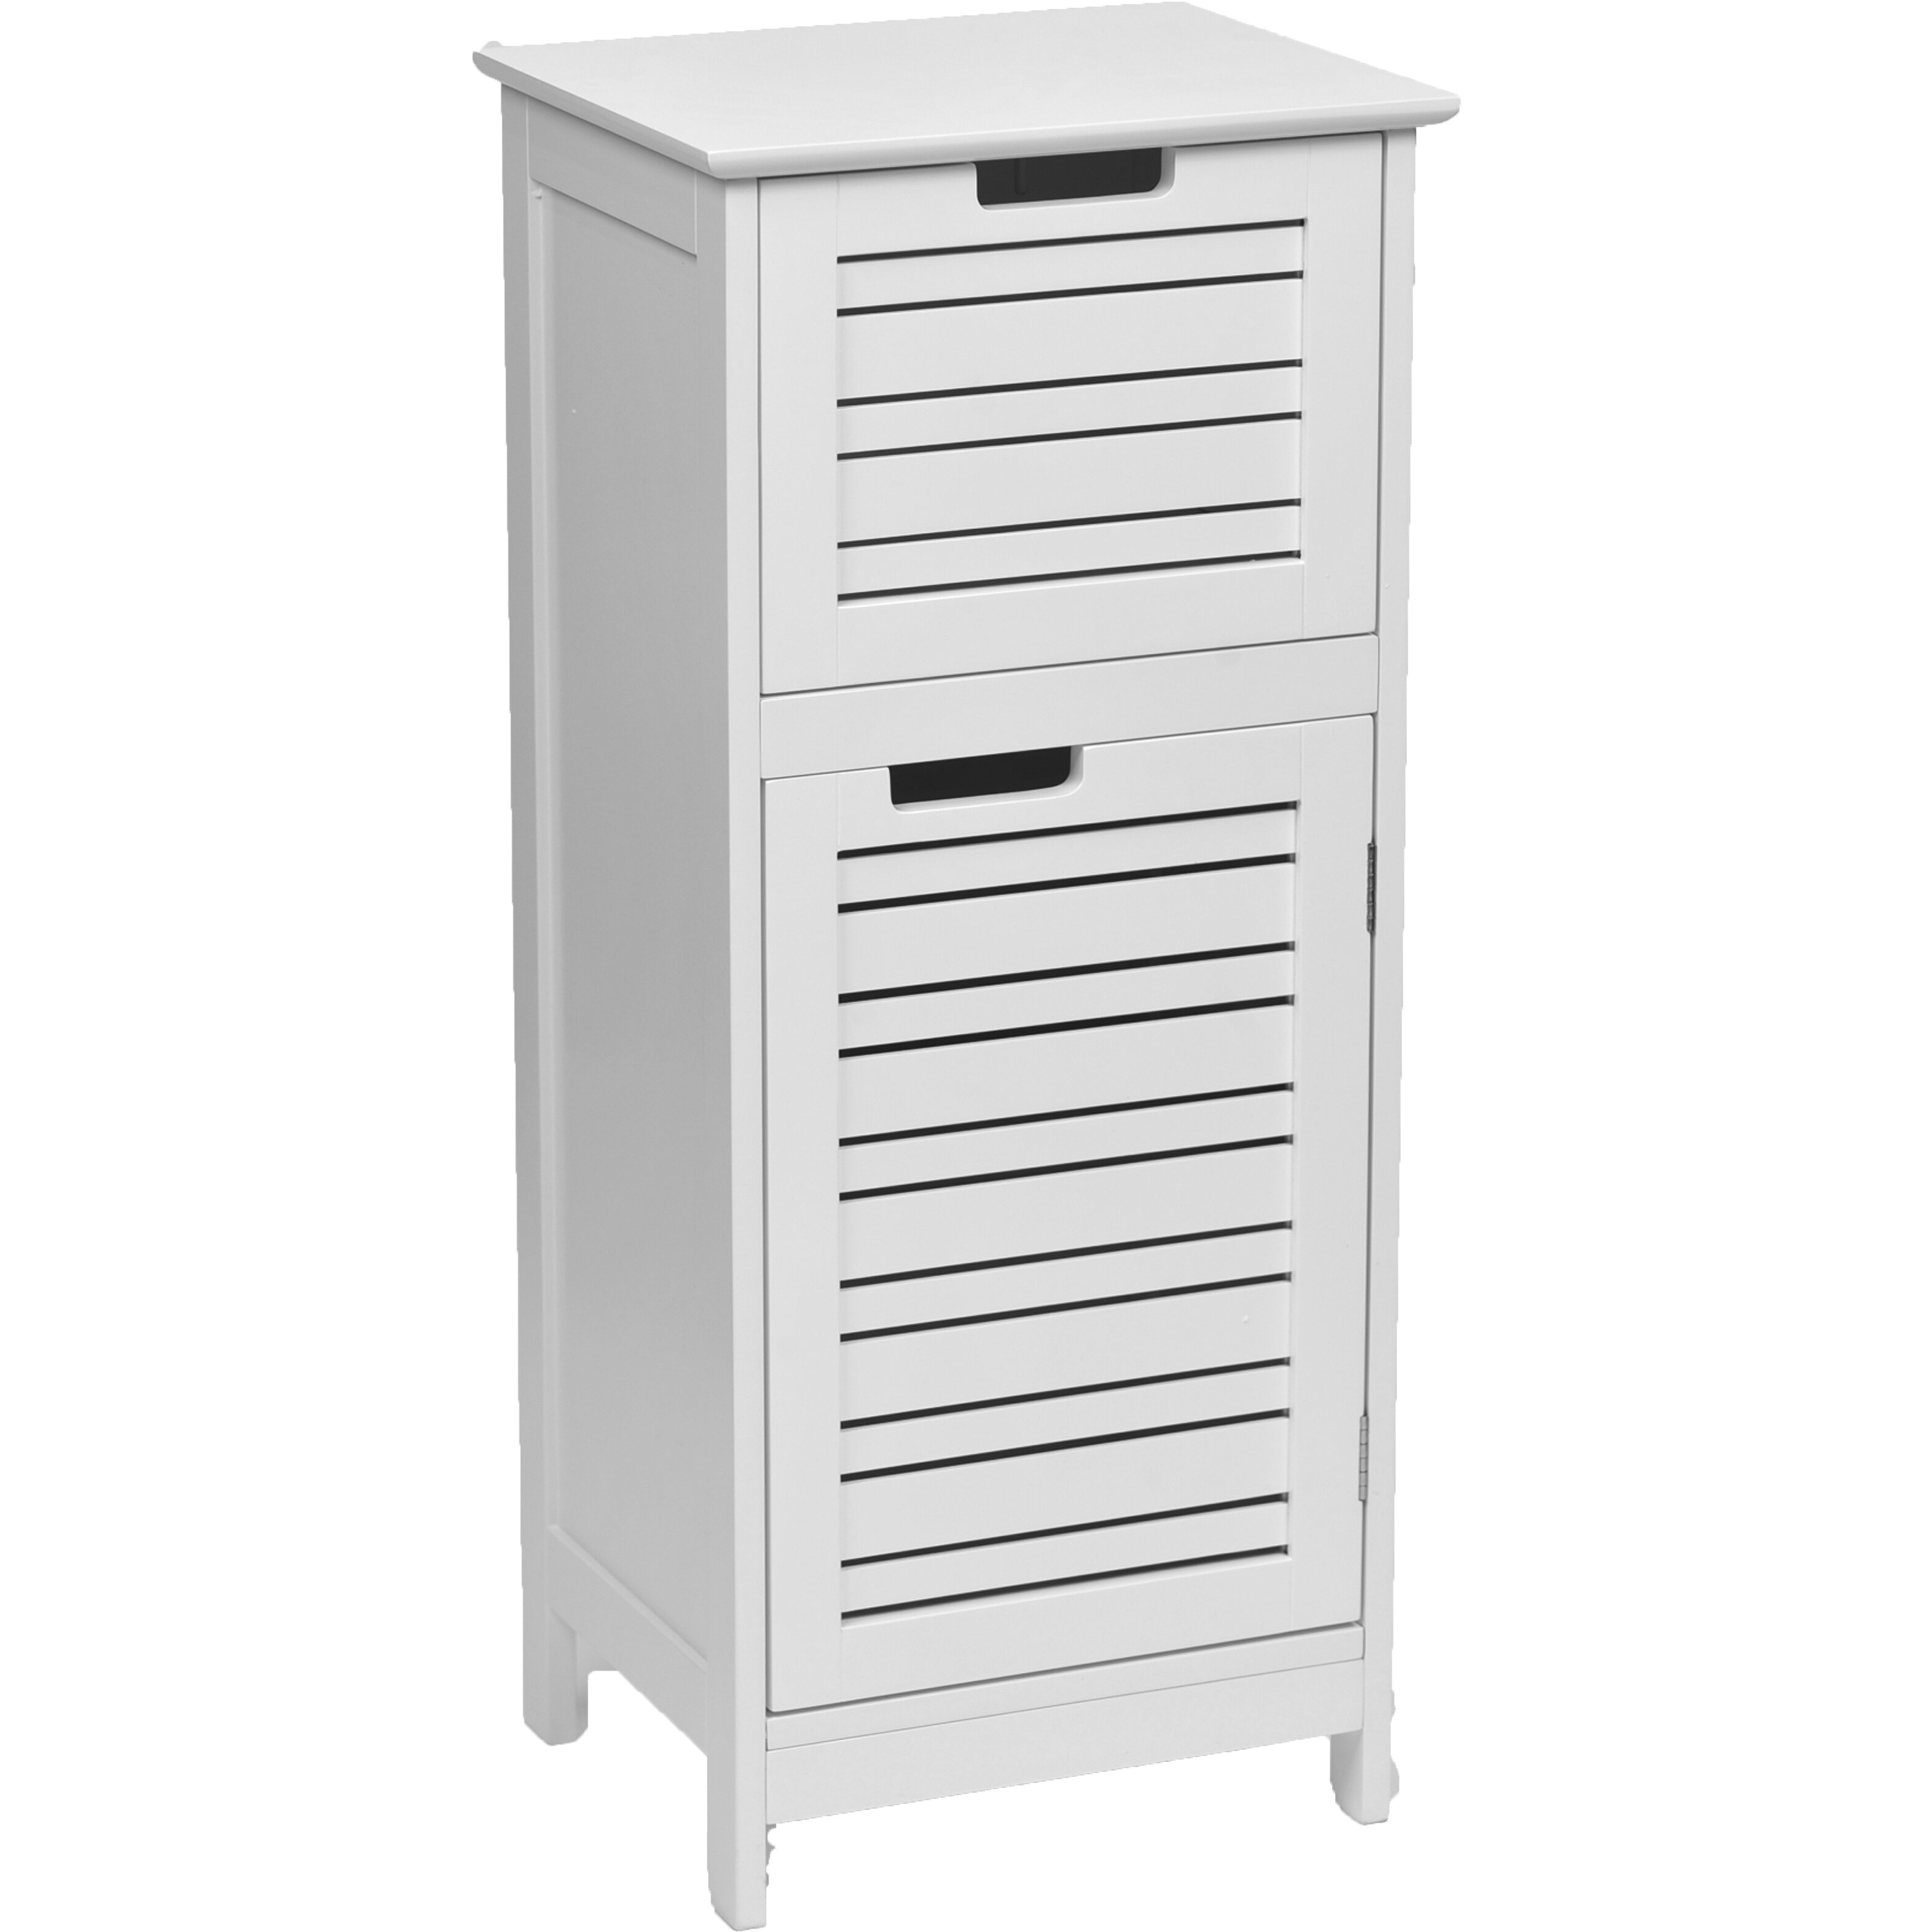 """Wayfair Free Standing Kitchen Cabinets: Evideco Miami 14.4"""" X 32.7"""" Free Standing Cabinet"""